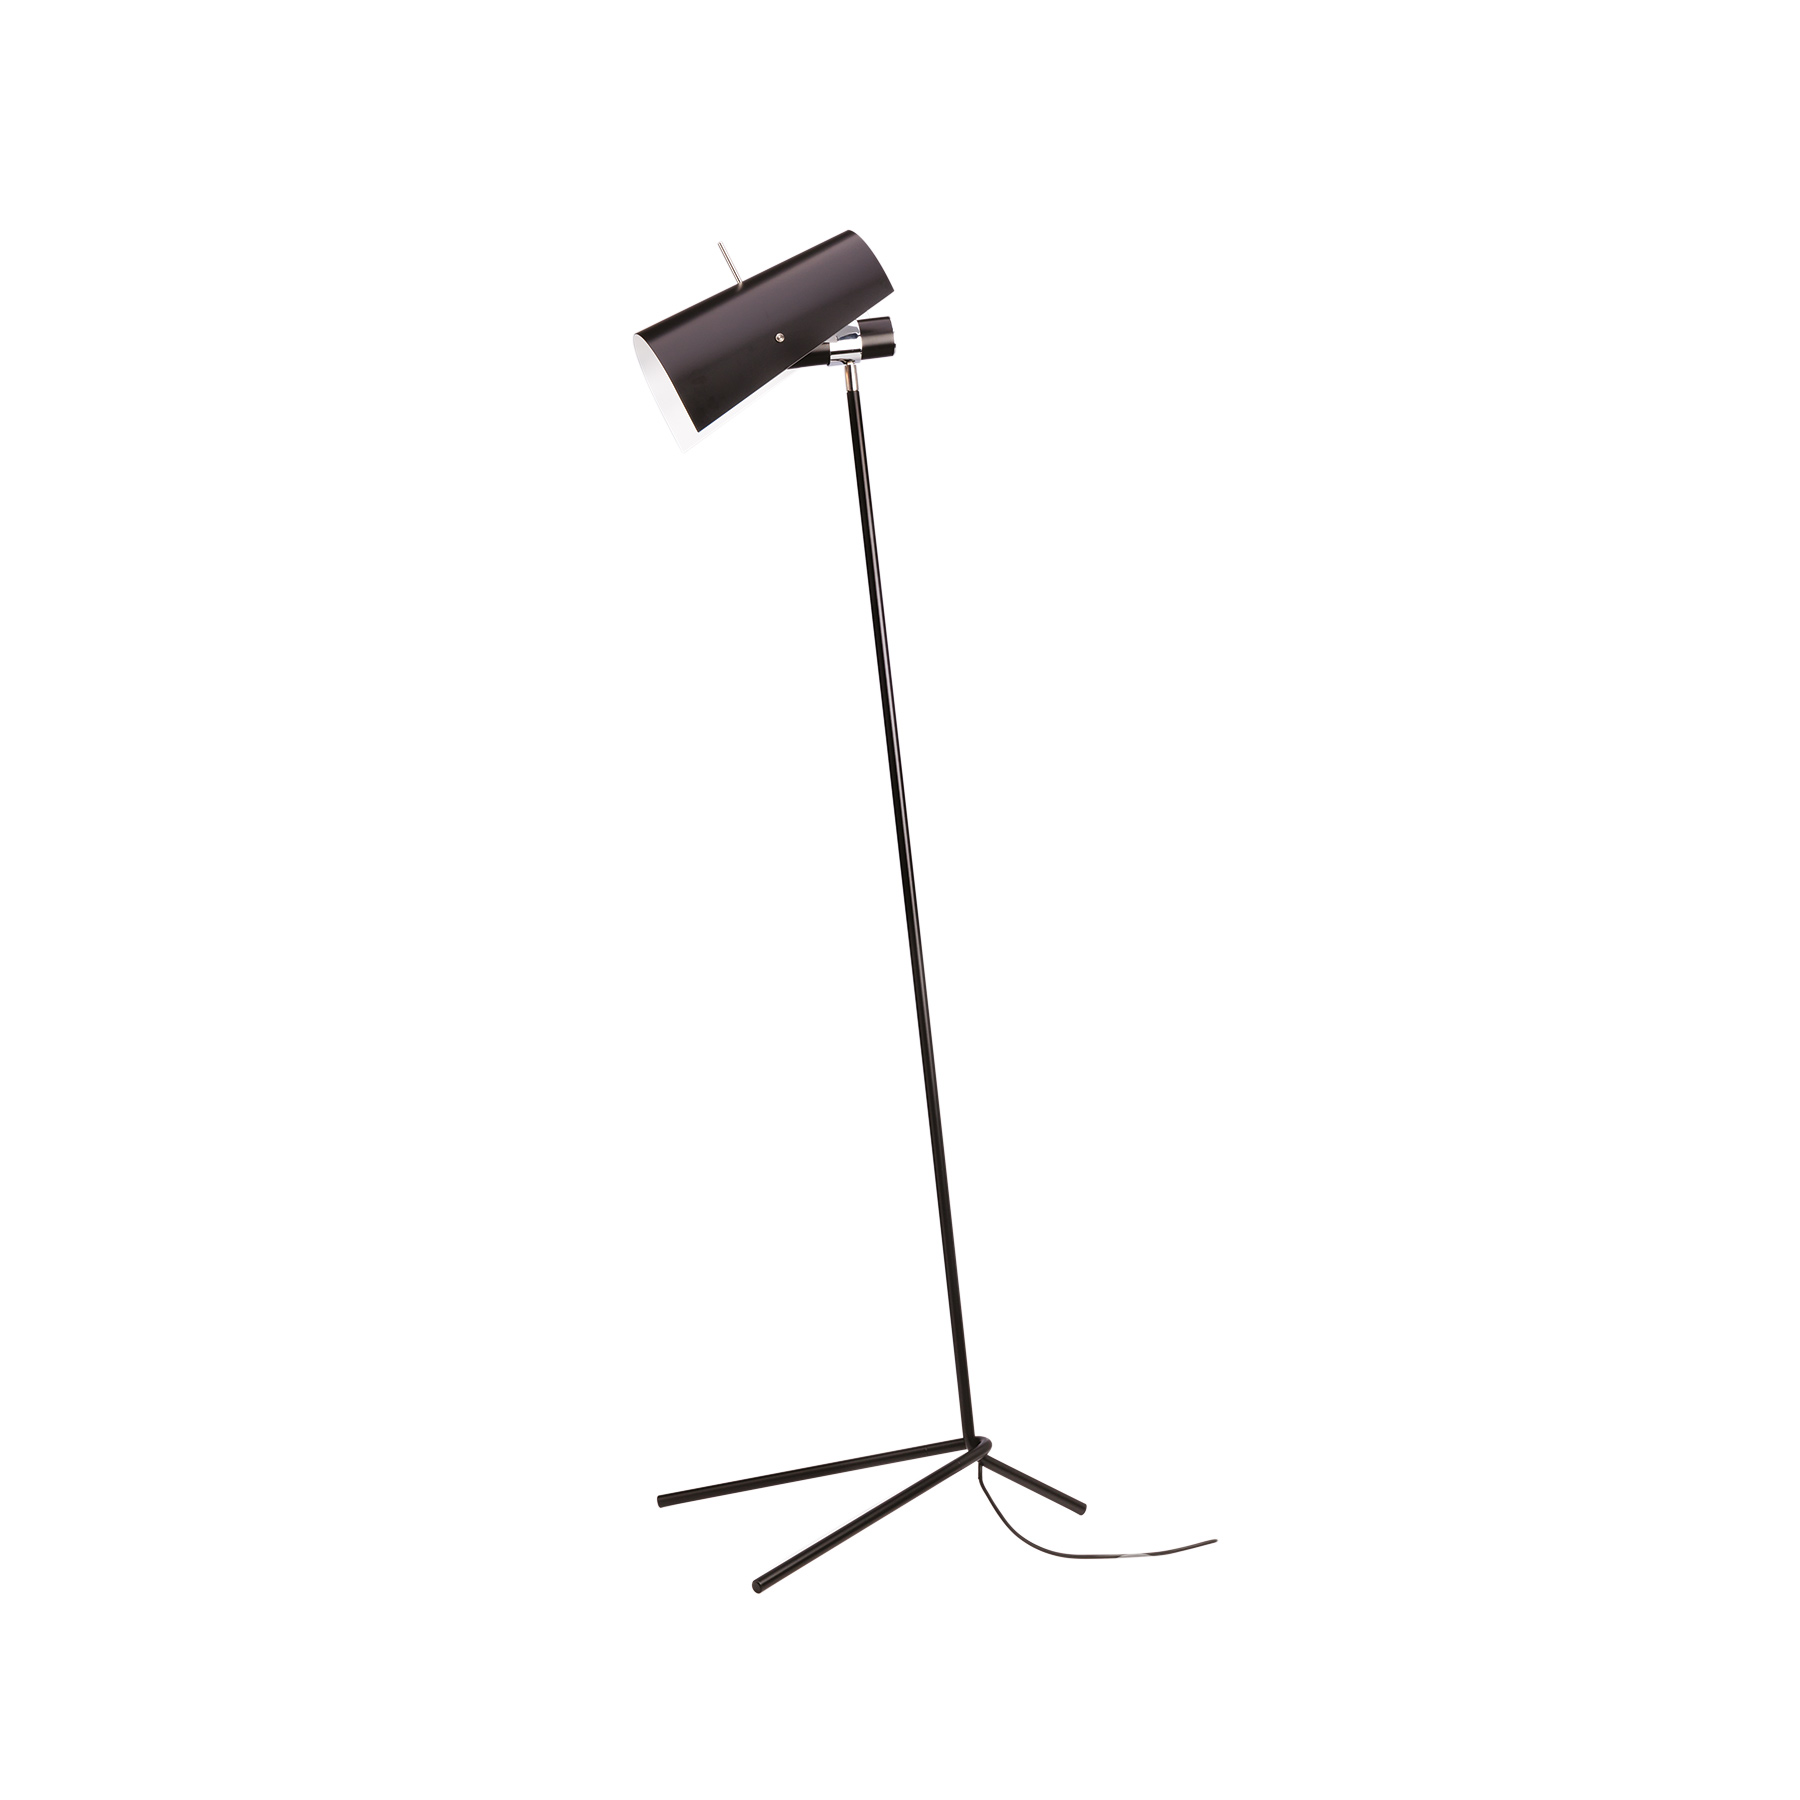 Claritas Floor Lamp - Claritas is the first lamp designed by Vico Magistretti, produced with Mario Tedeschi in 1946. The lamp is made of bent metal tubes, painted in black. Parts of the structure are in chromed metal. Aluminium diffuser painted in black, white in the inner part. Prices are with bulb not included.